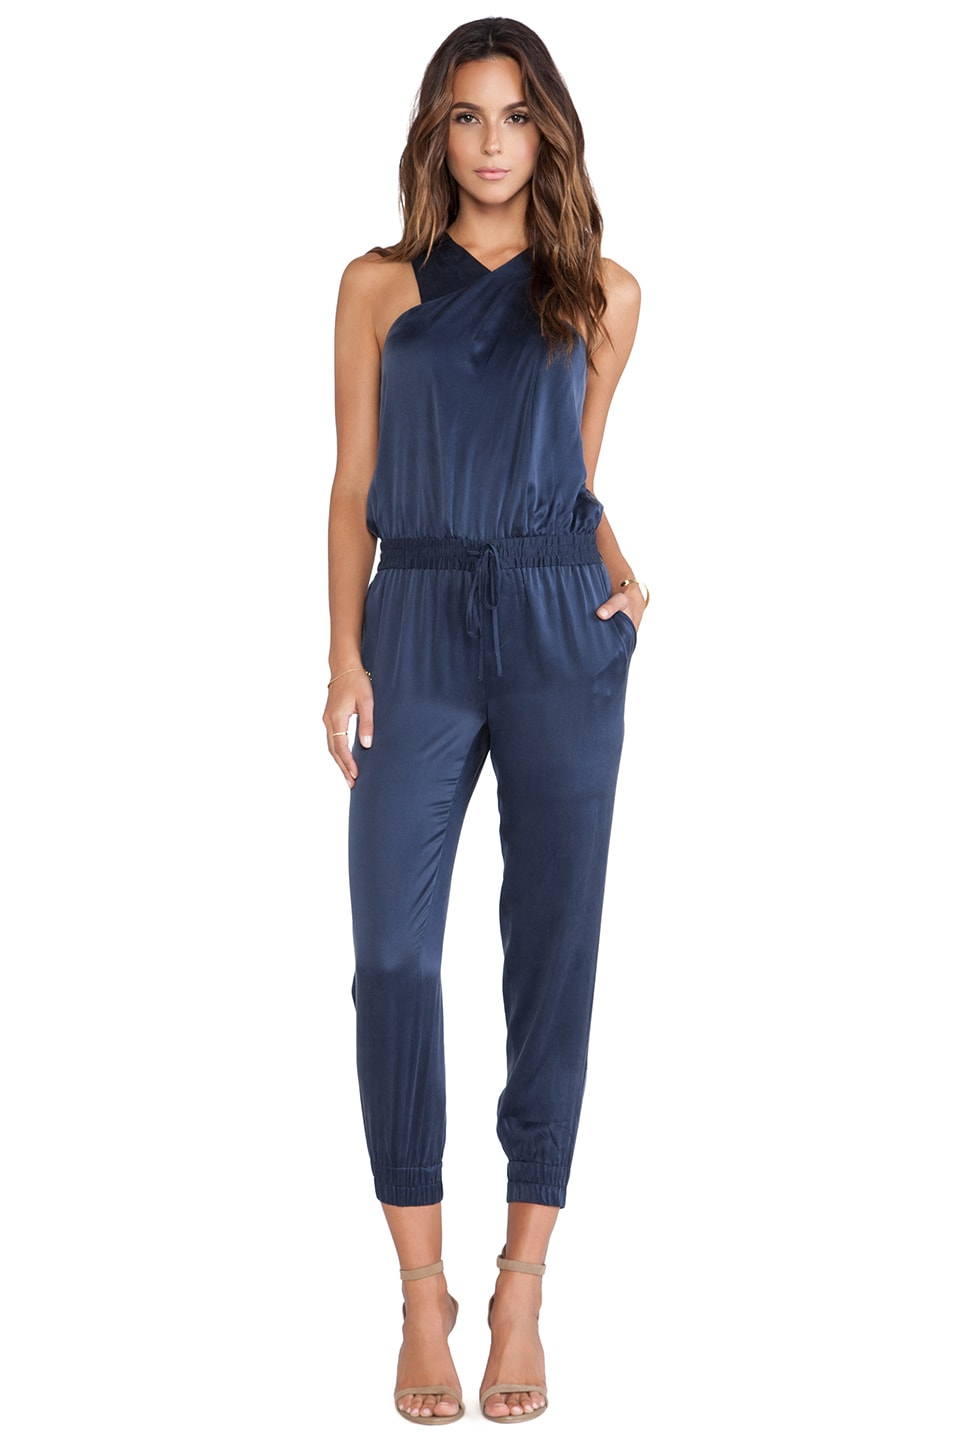 PAIGE Garland Jumpsuit in Dark Ink Blue